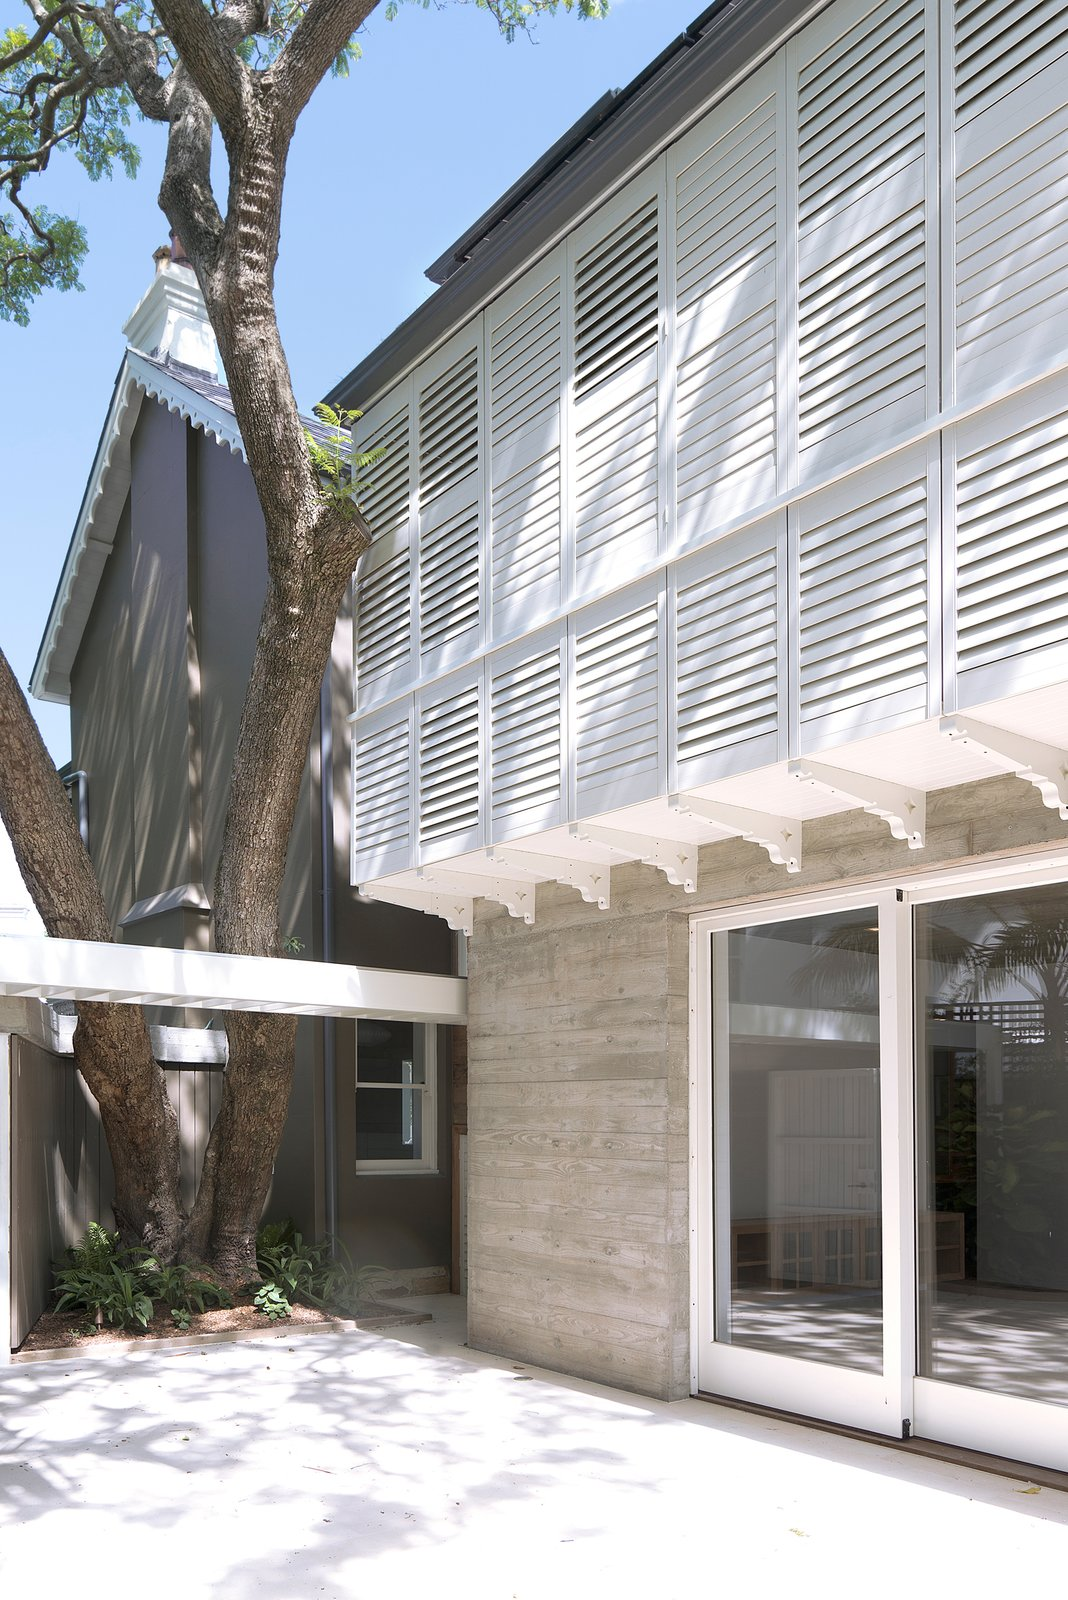 On the fringes of the City of Sydney, trees, heritage and modern architecture share the tight space offered to them and commune happily. A Homestone Pellegrino sandstone provides a luminous courtyard, bouncing light upward. Homestone © Edward Birch Loggia in Arcadia by Luigi Rosselli Architects